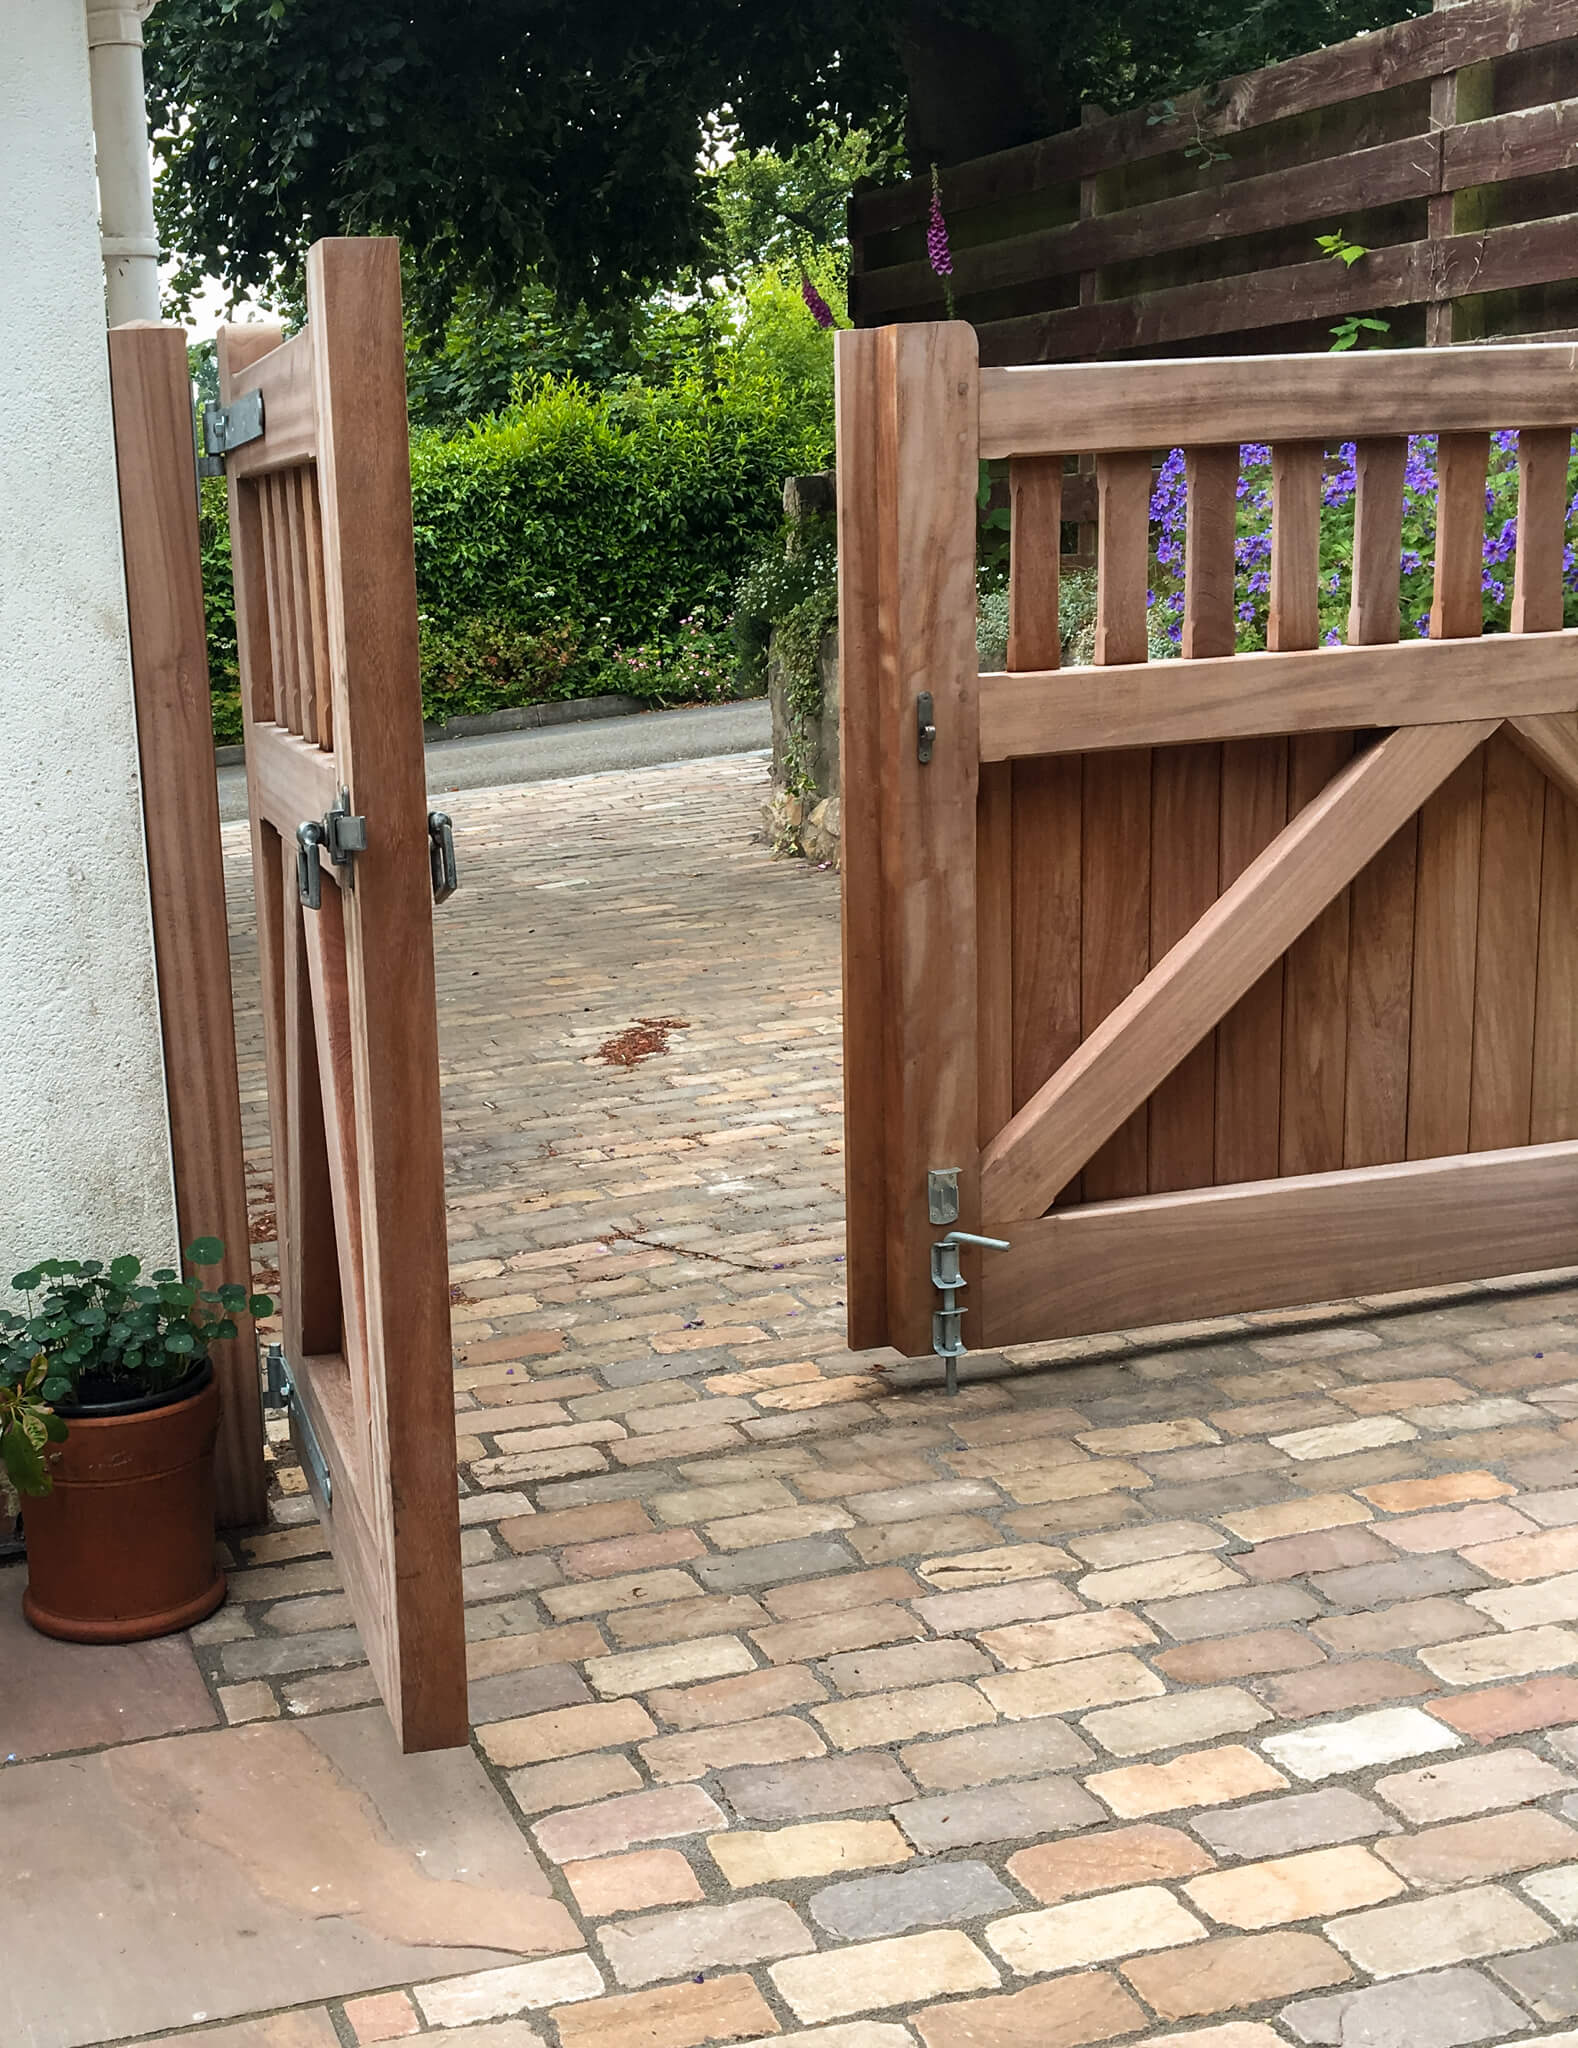 An open wooden gate looking out onto a stone driveway 2